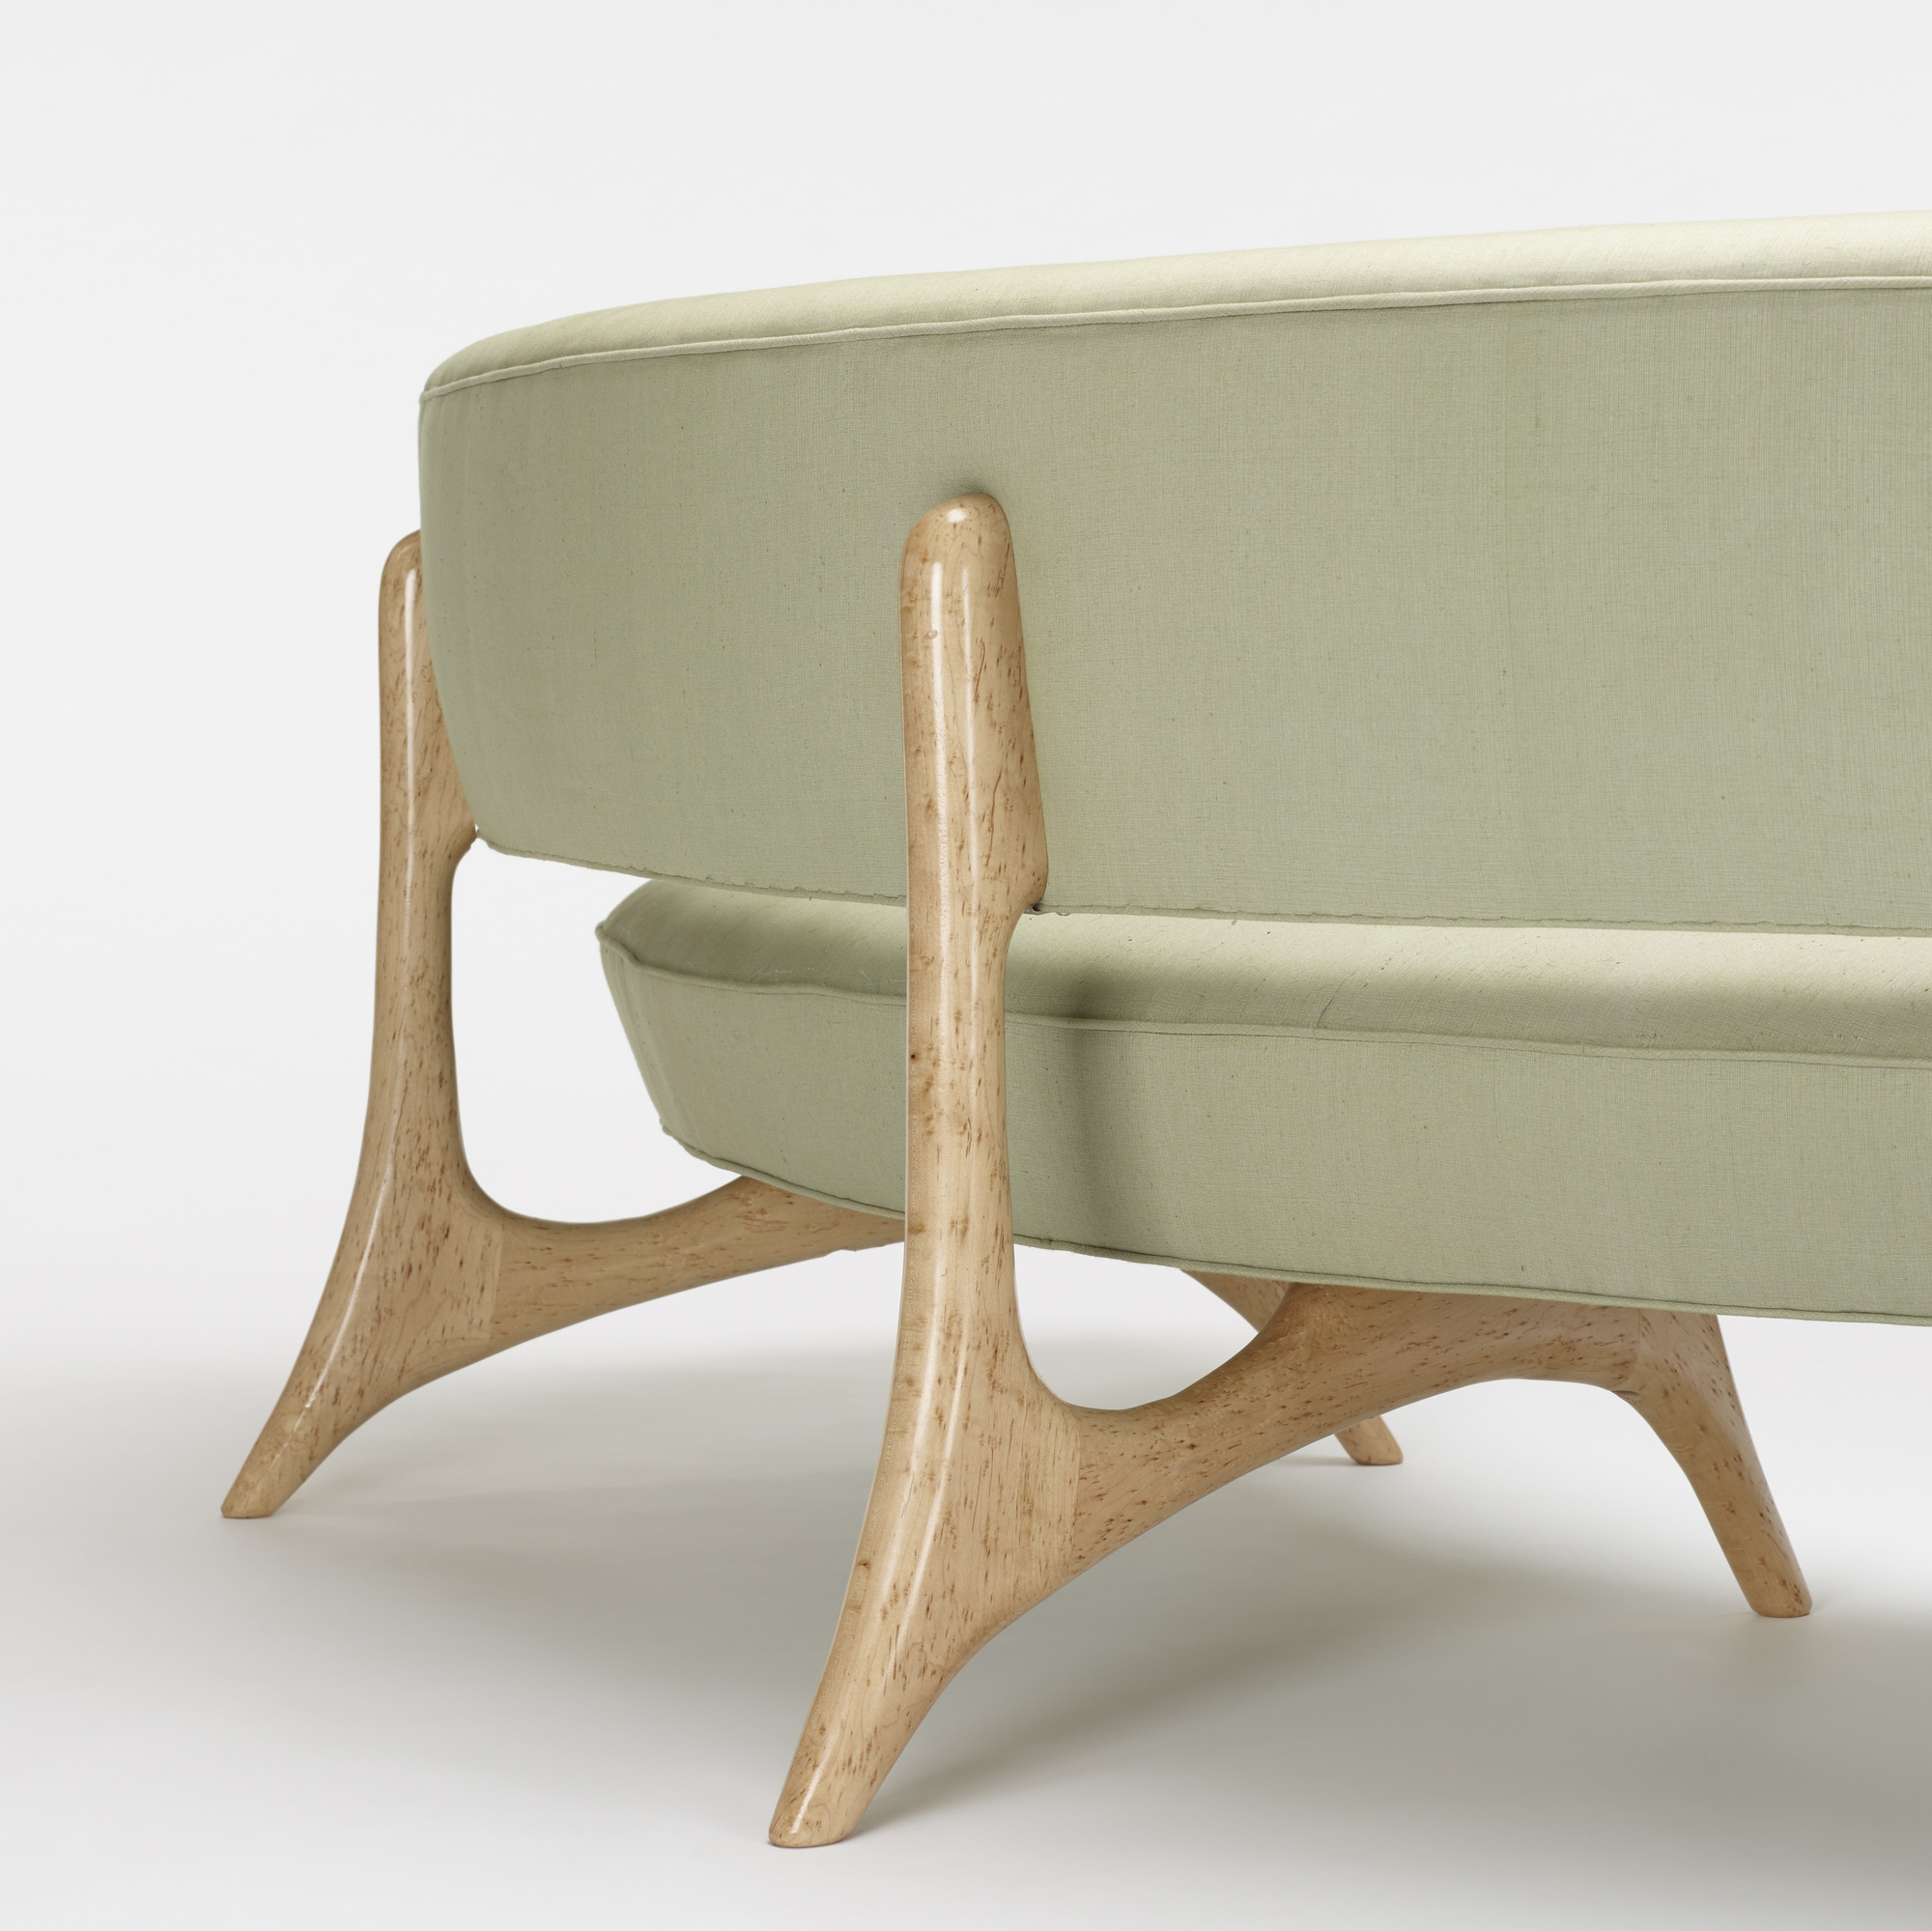 356: Vladimir Kagan / Floating Seat and Back sofa (3 of 3)